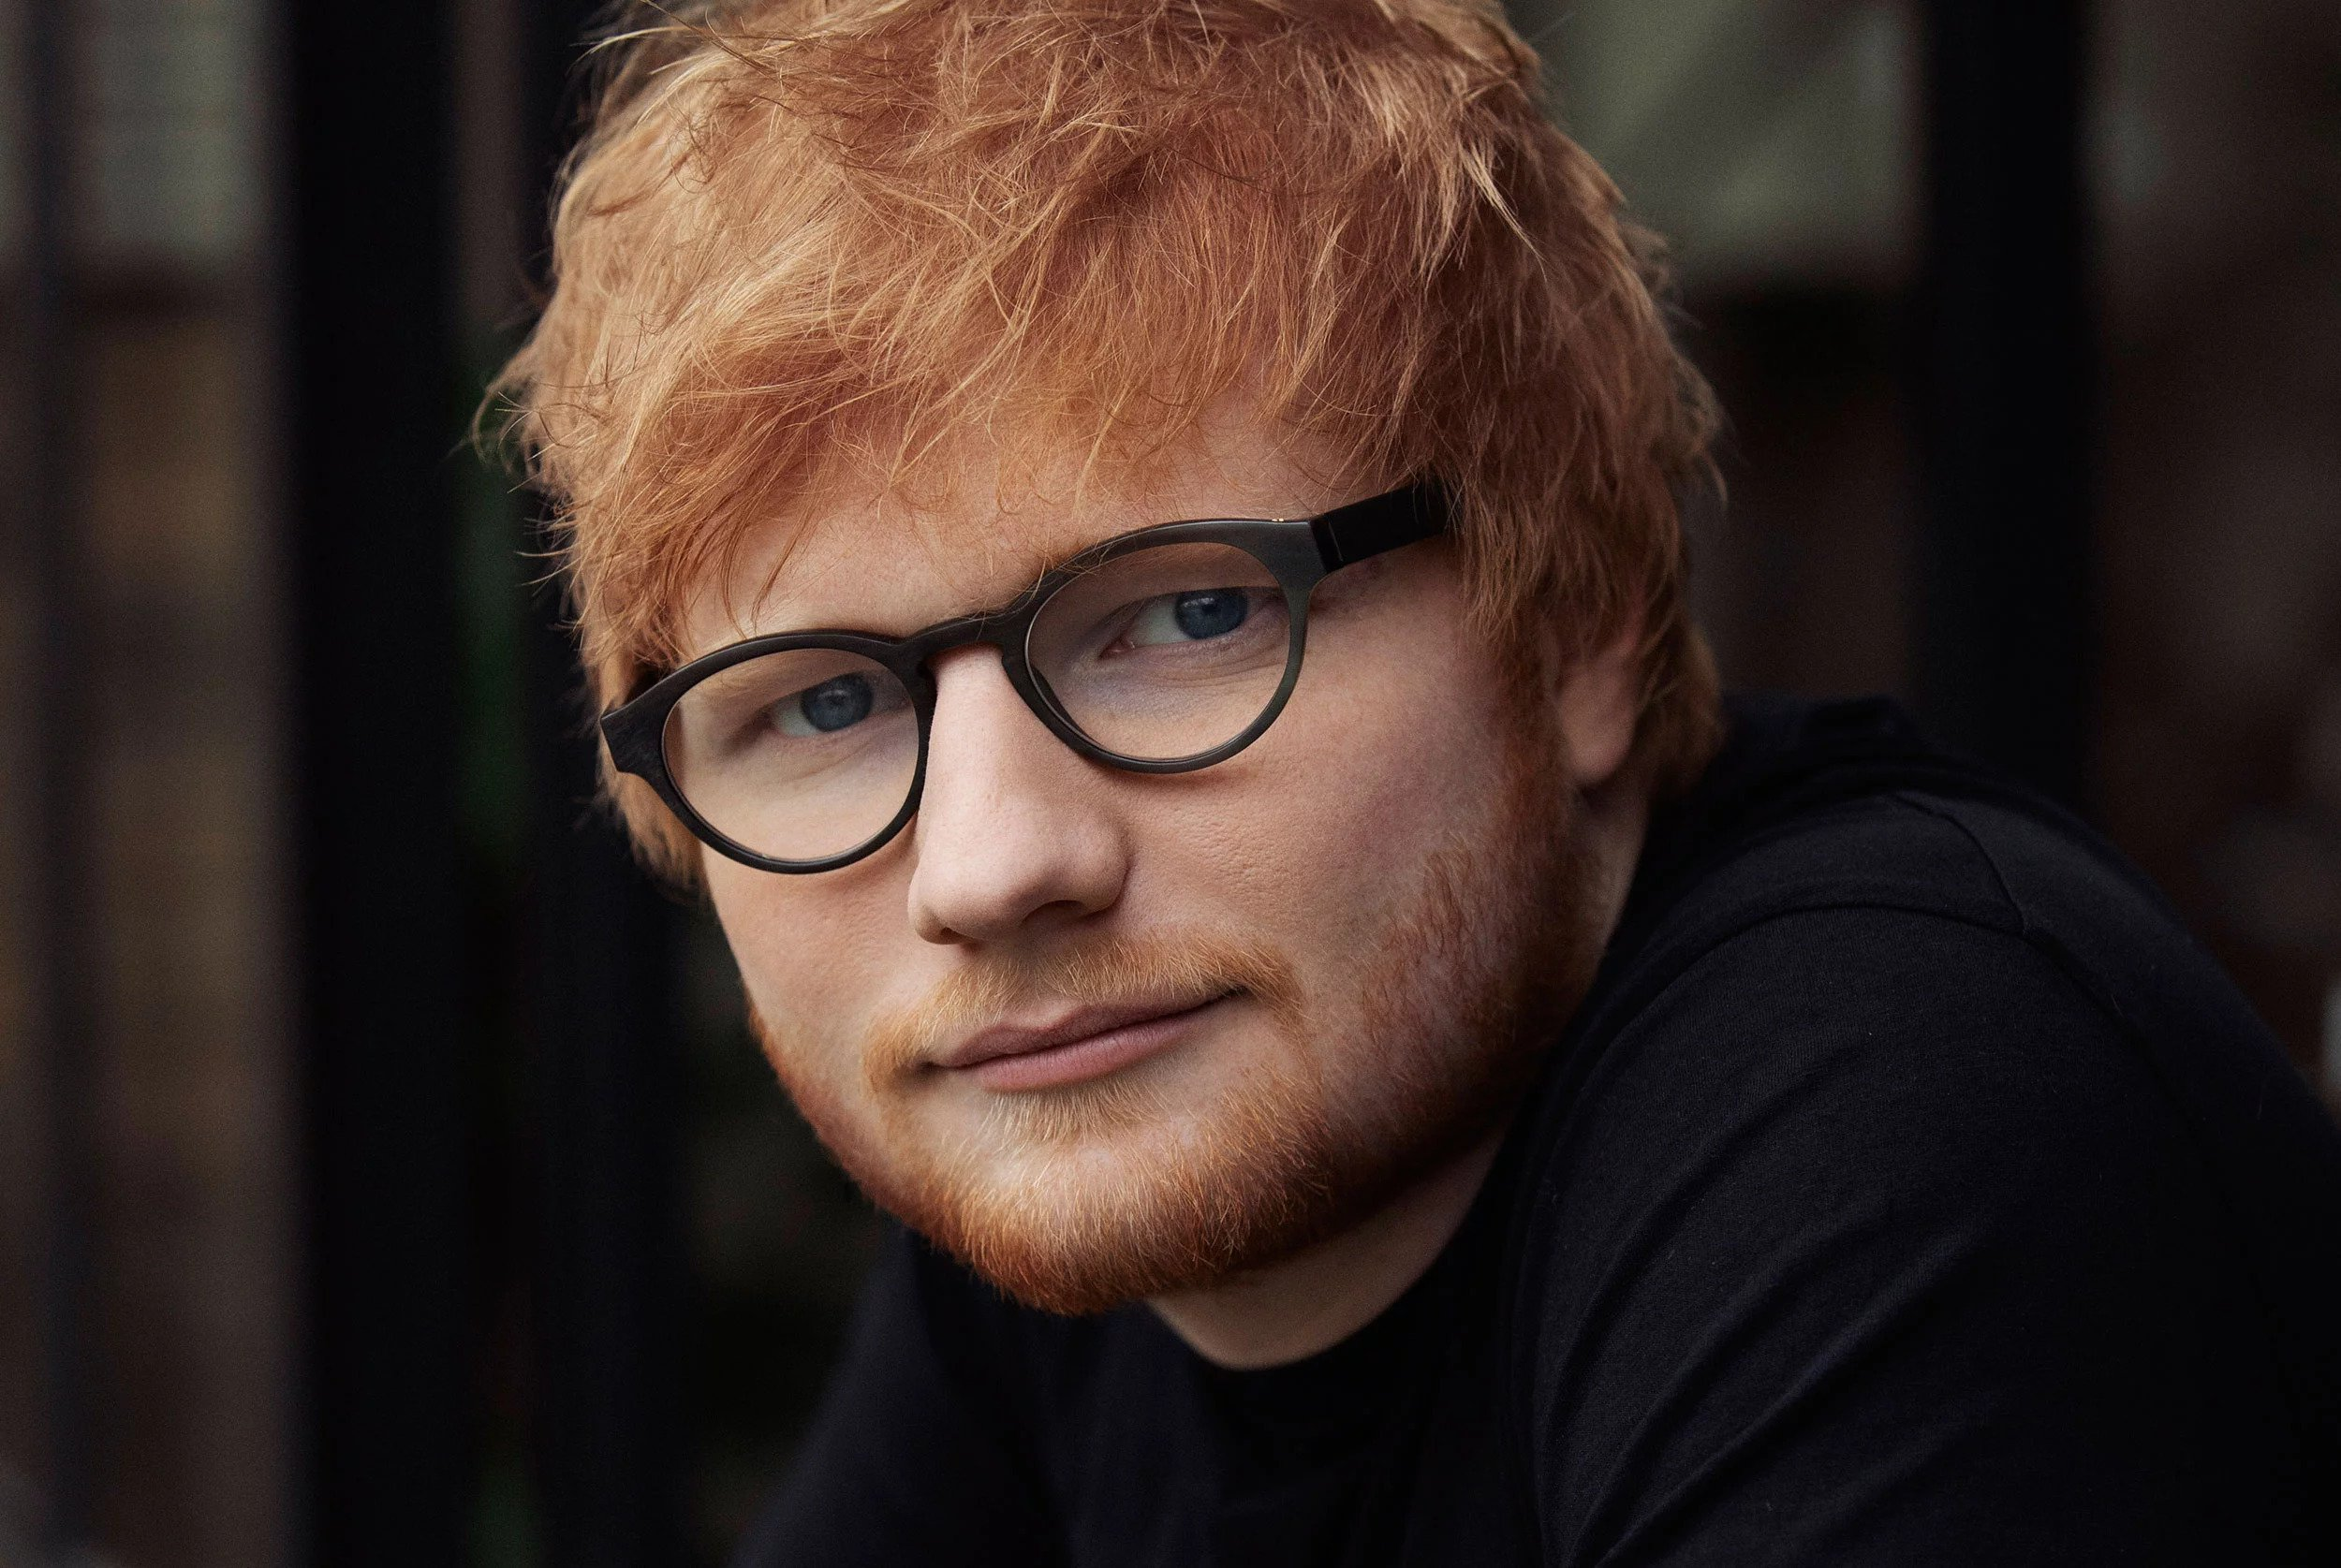 Ed Sheeran glasses: Get the Look to upgrade your Wardrobe